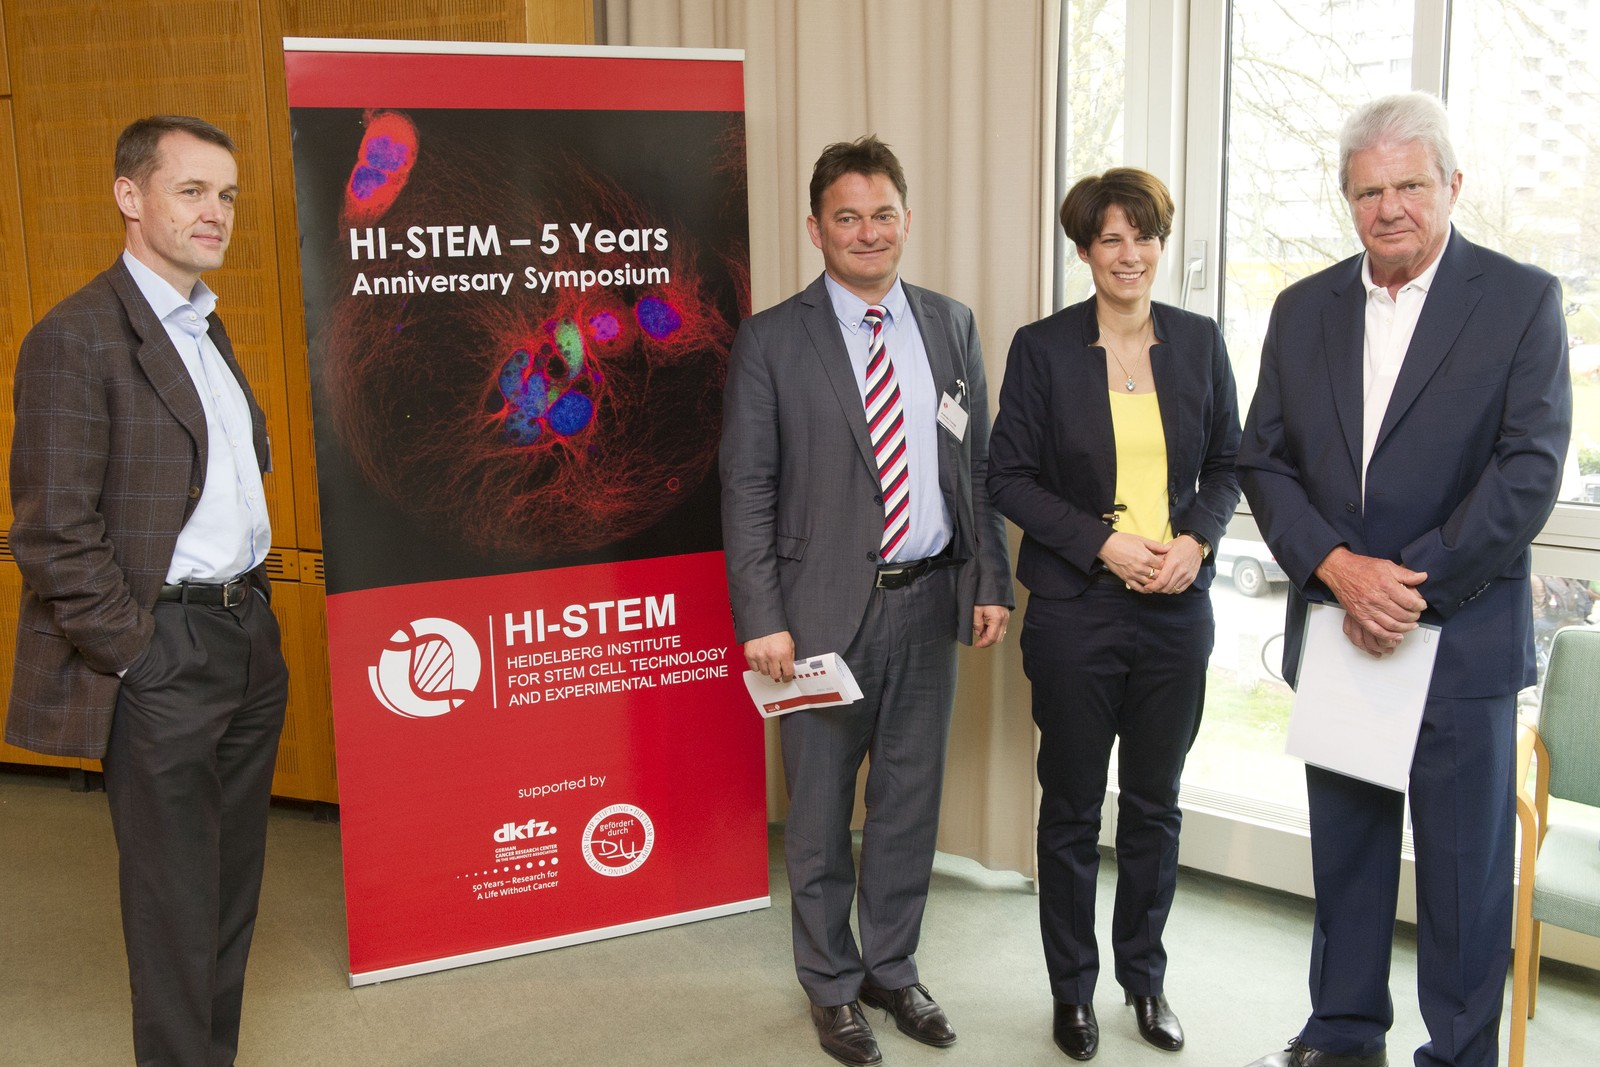 2014: Symposium on the occasion of the fifth anniversary of HI-STEM